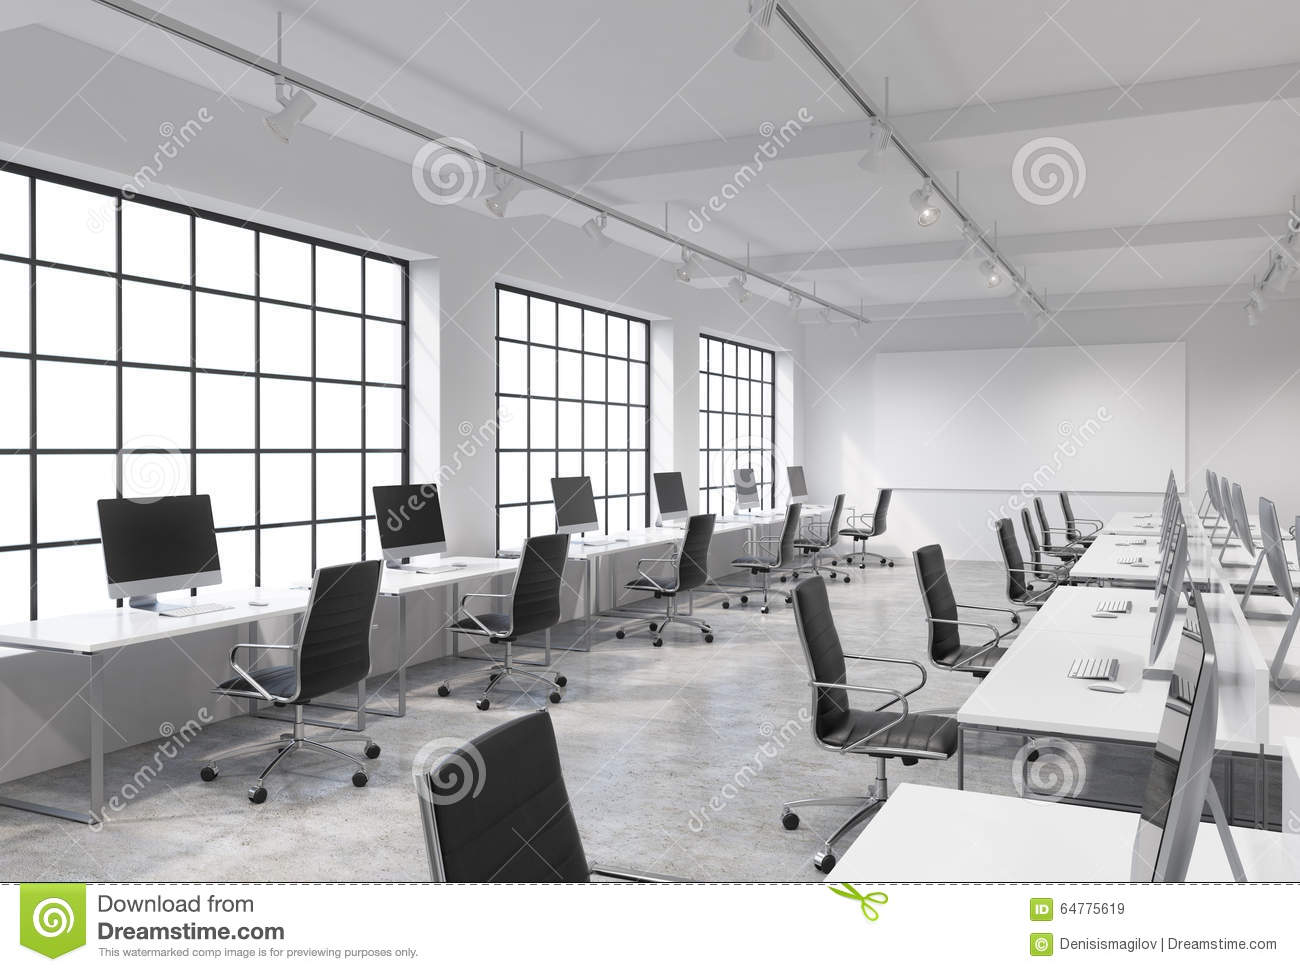 Open space office with computers stock illustration for Bureau open space dimension